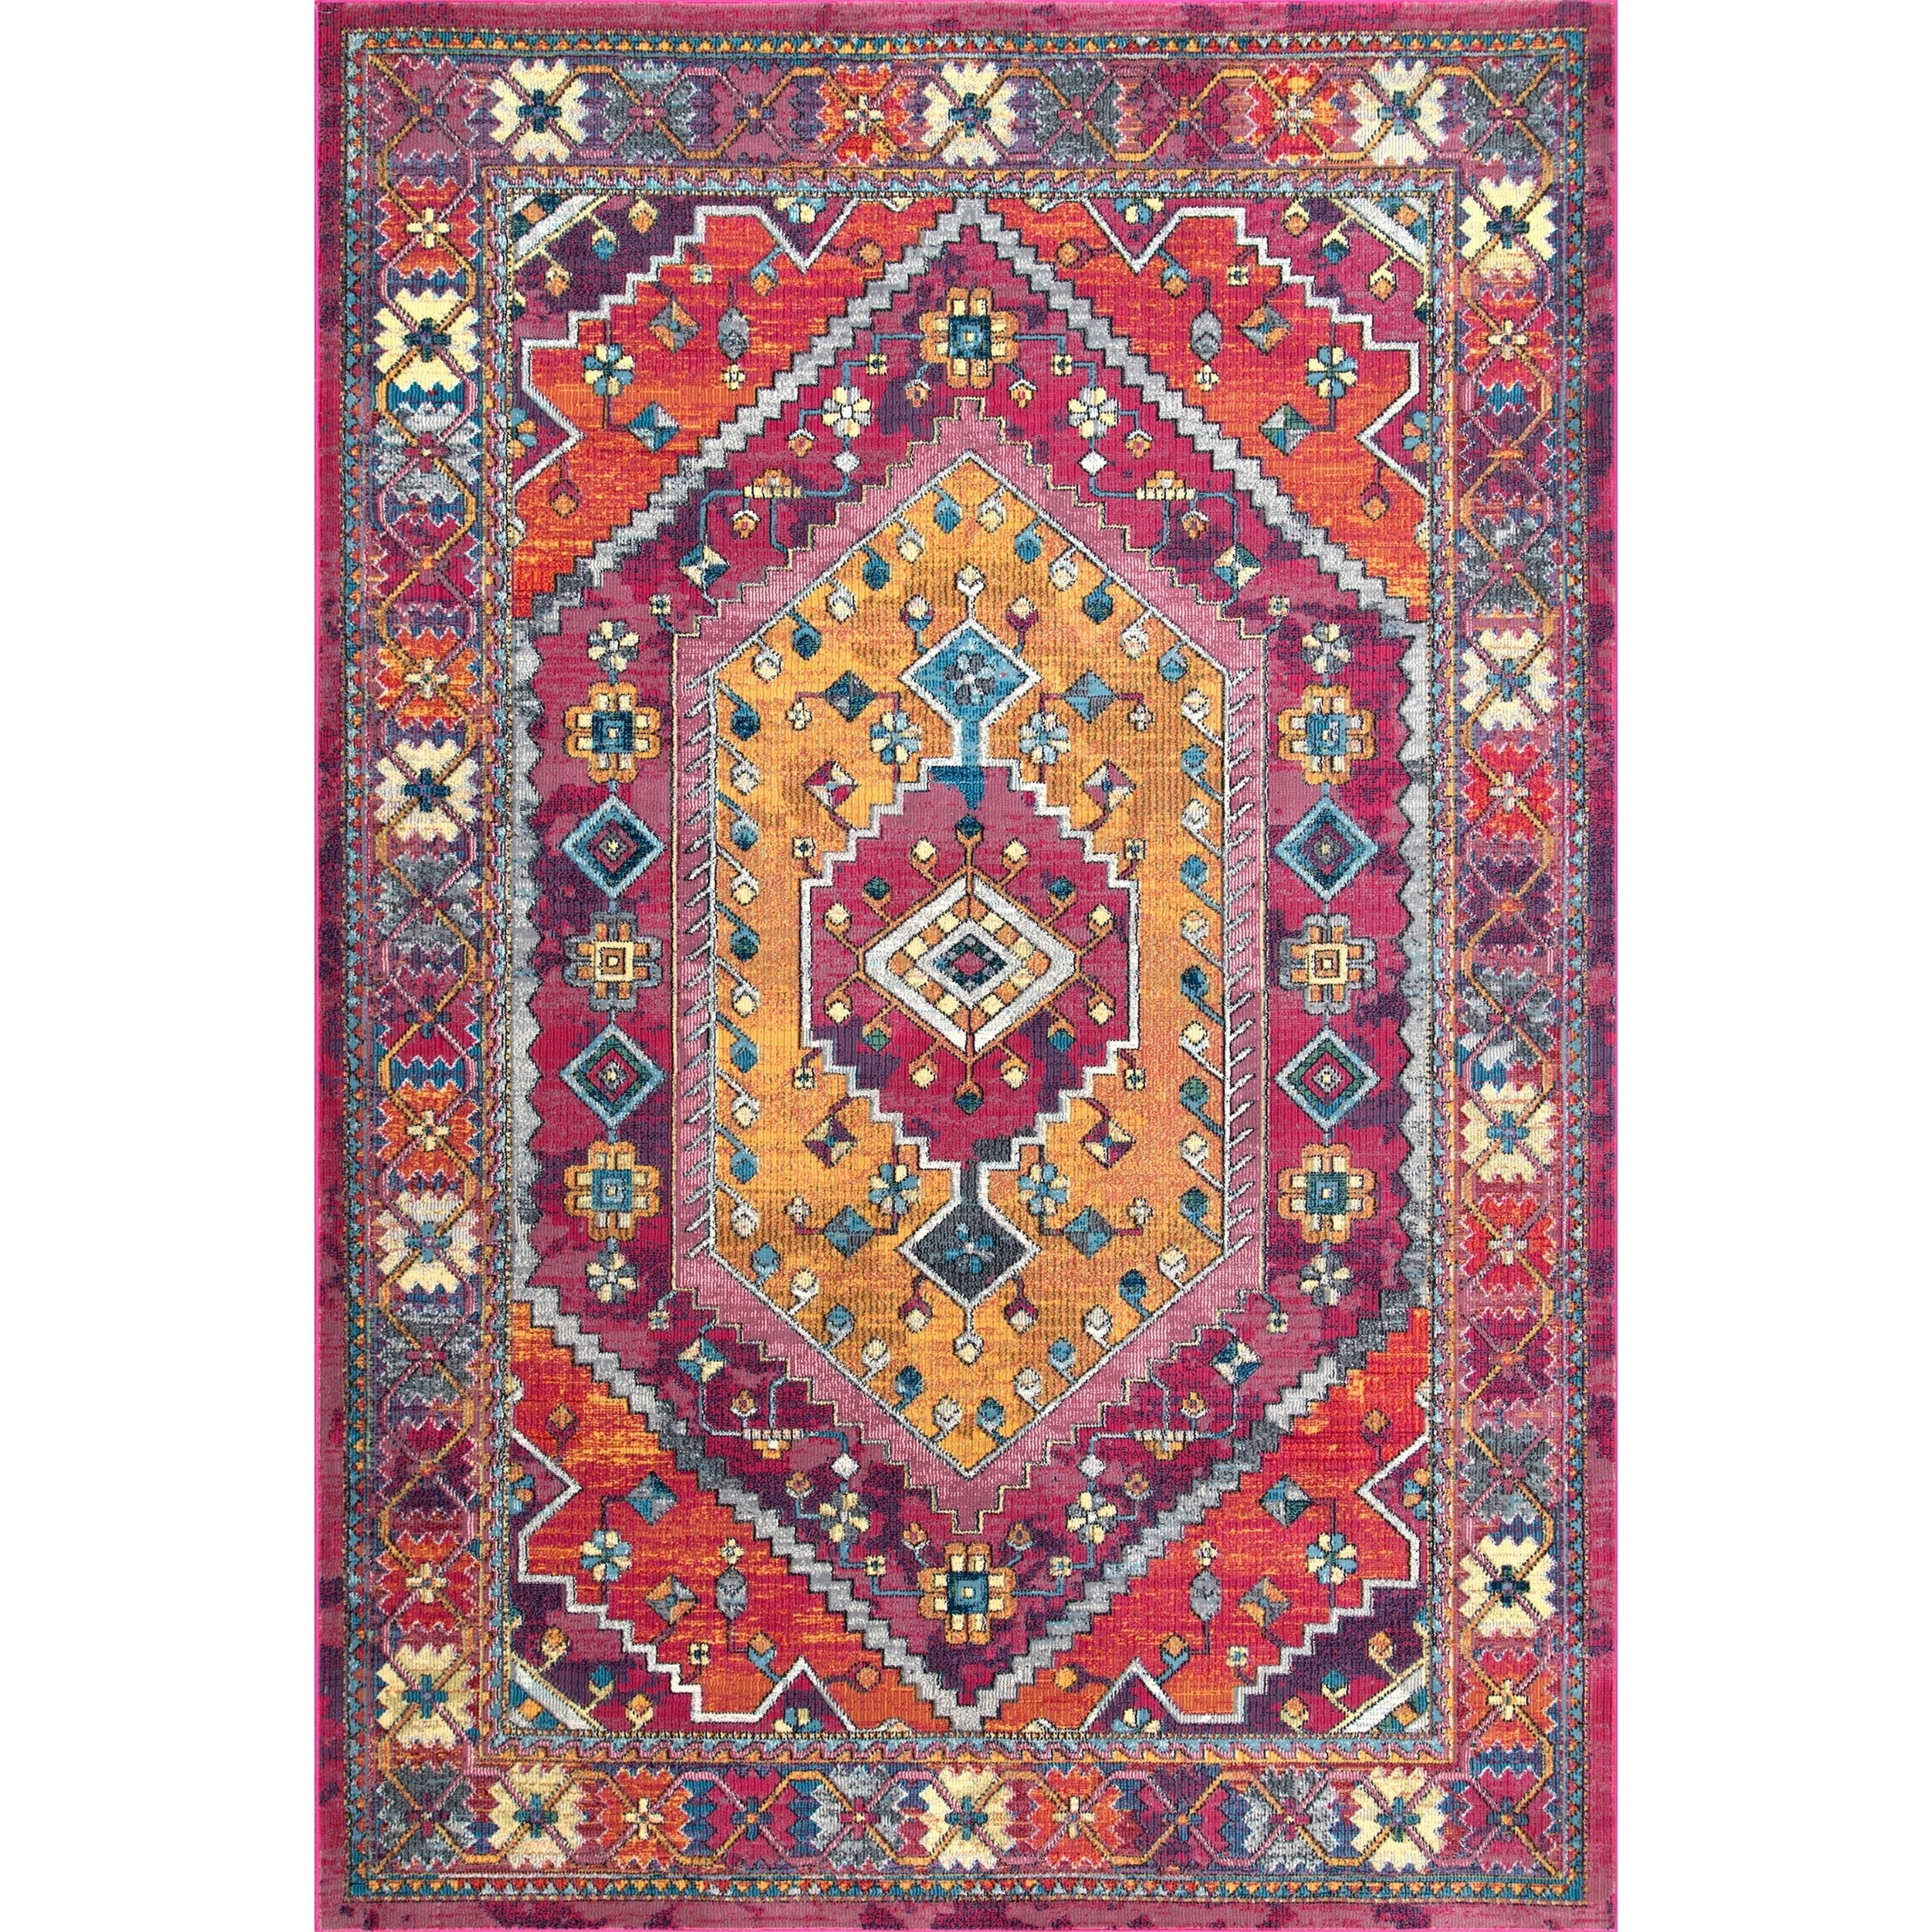 kilim rugsemilie rugs aztec pink home our runner carpet for rug emilie warmth color